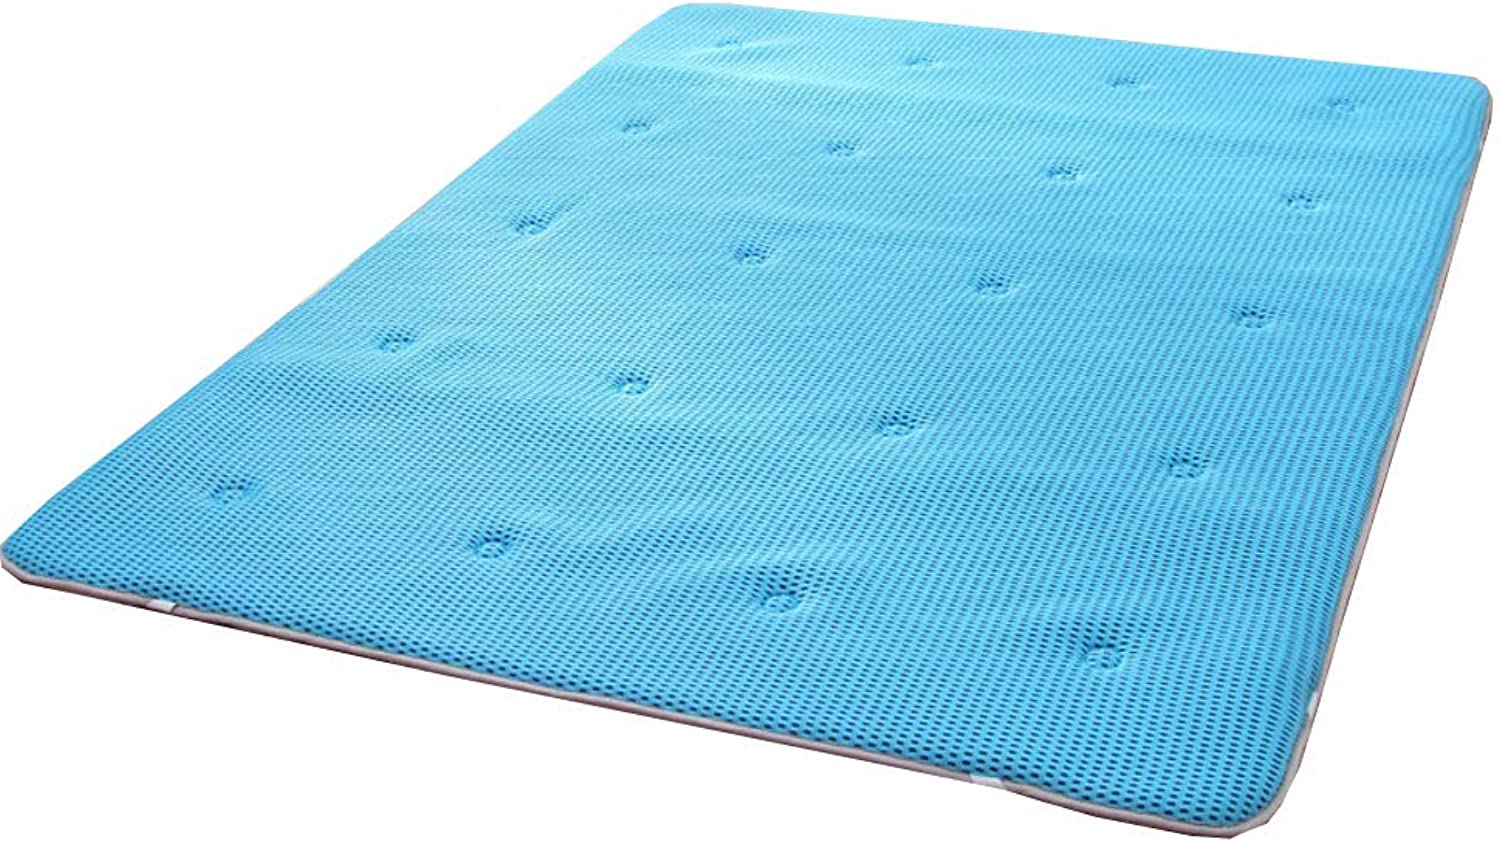 Double Sided Tatami Mattress Mat, Breathable Sleeping Pad Japanese Bed Roll Mattress Topper Futon Floor Mat for Students Dorm Home-a 90x200cm(35x79inch)